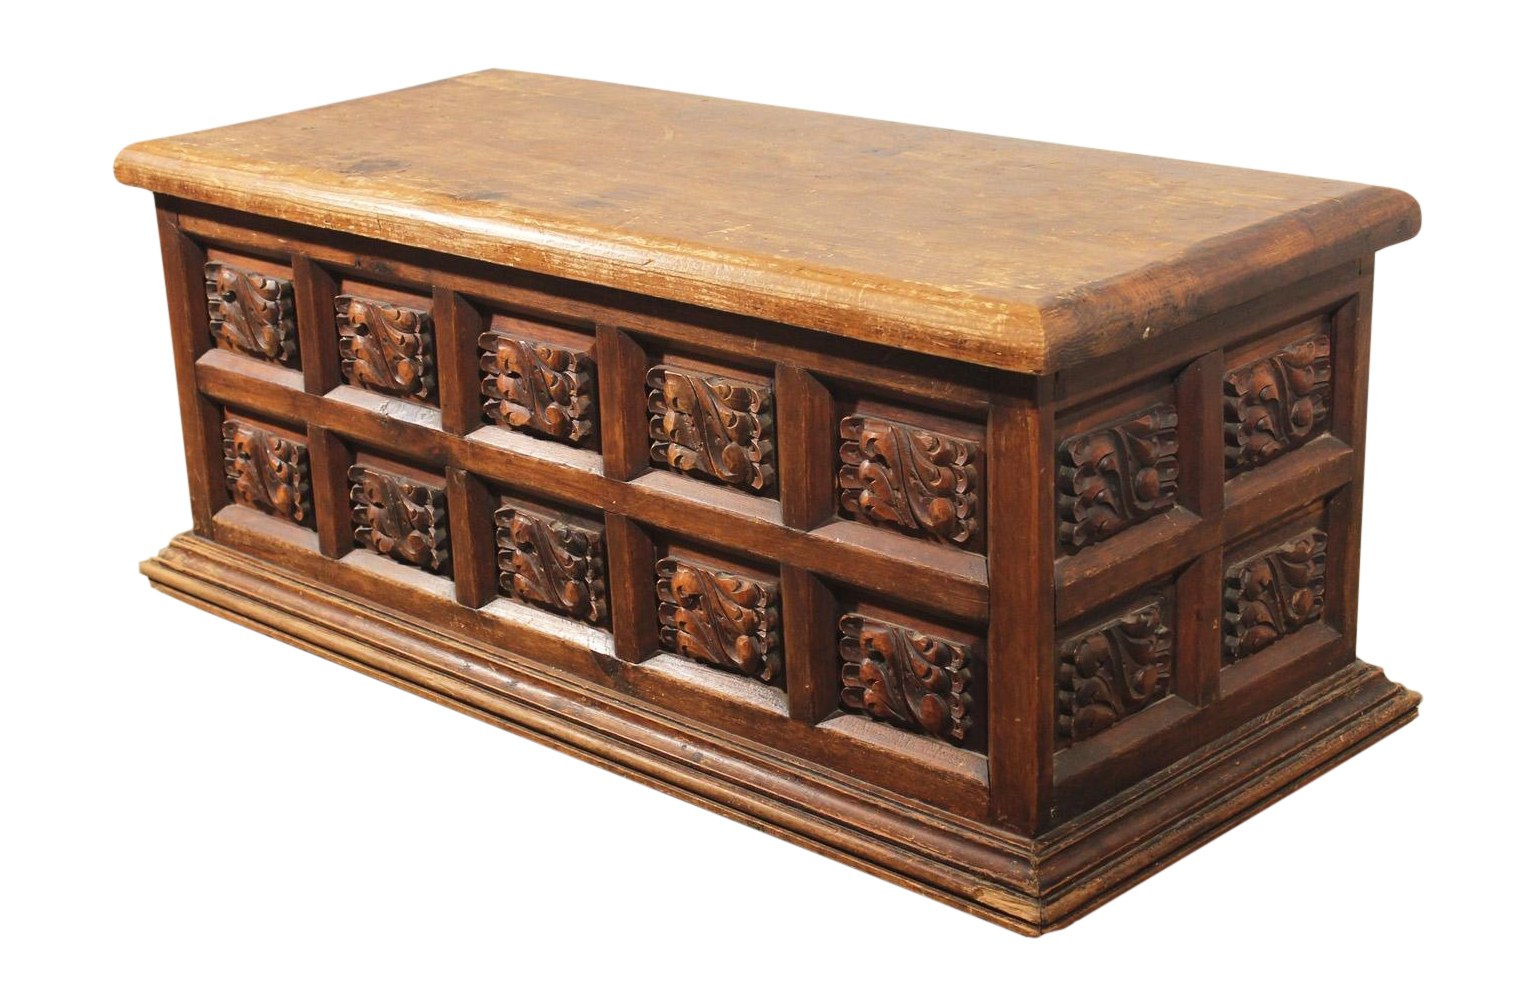 Vintage & Used Spanish Trunks and Chests